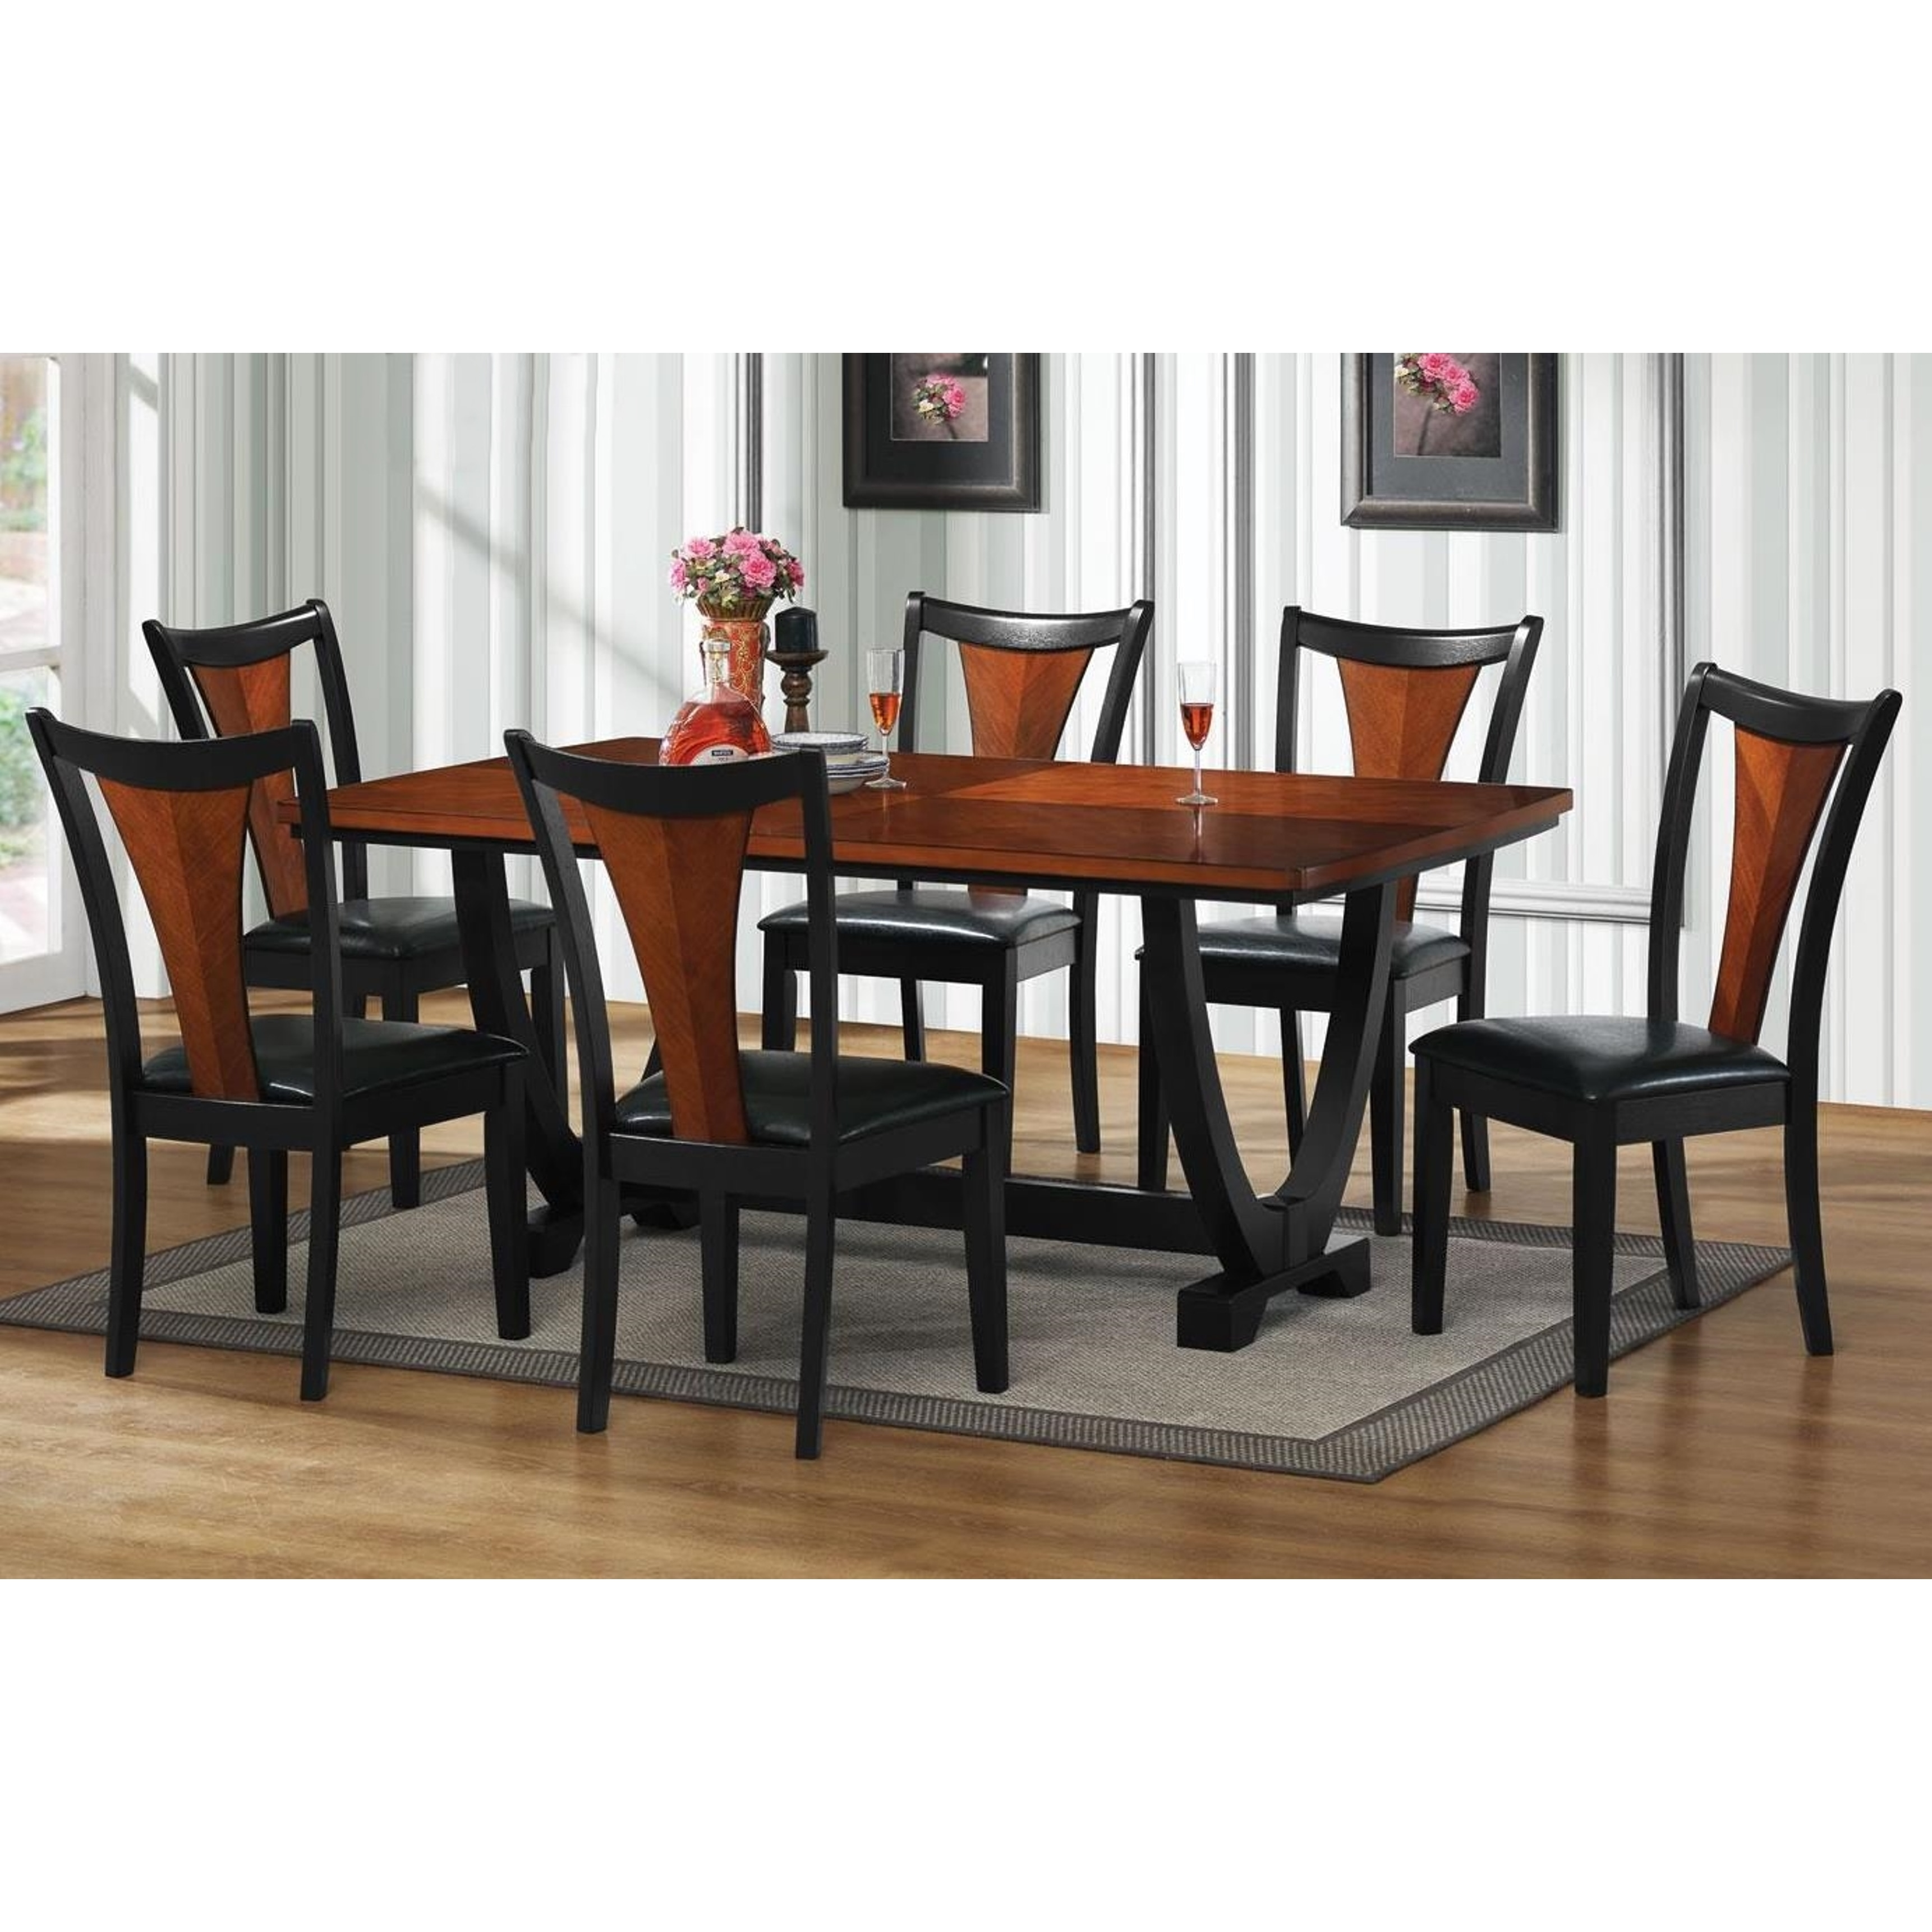 Discount Dining Room Sets Free Shipping: Besancon Two-tone Black/ Cherry 7-piece Dining Set